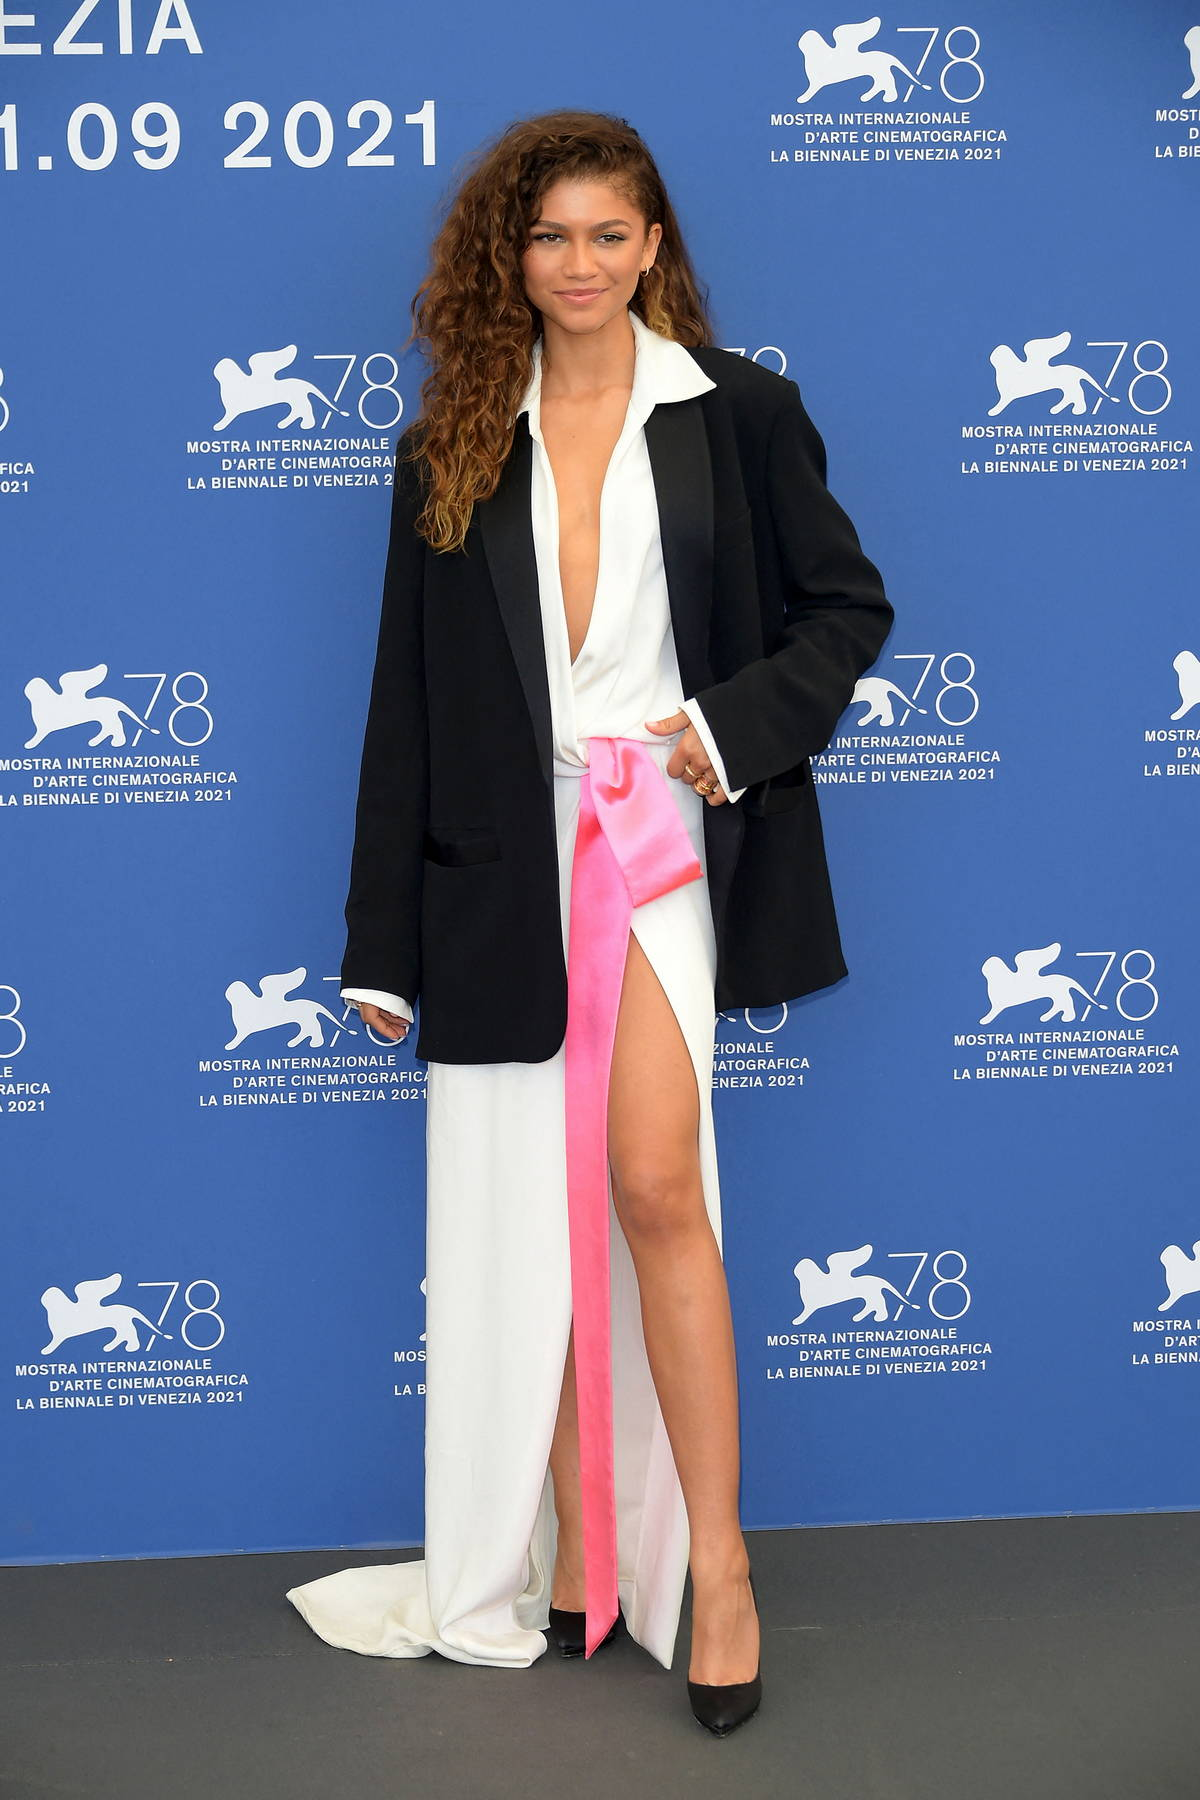 Zendaya attends the photocall of 'Dune' during the 78th Venice International Film Festival in Venice, Italy